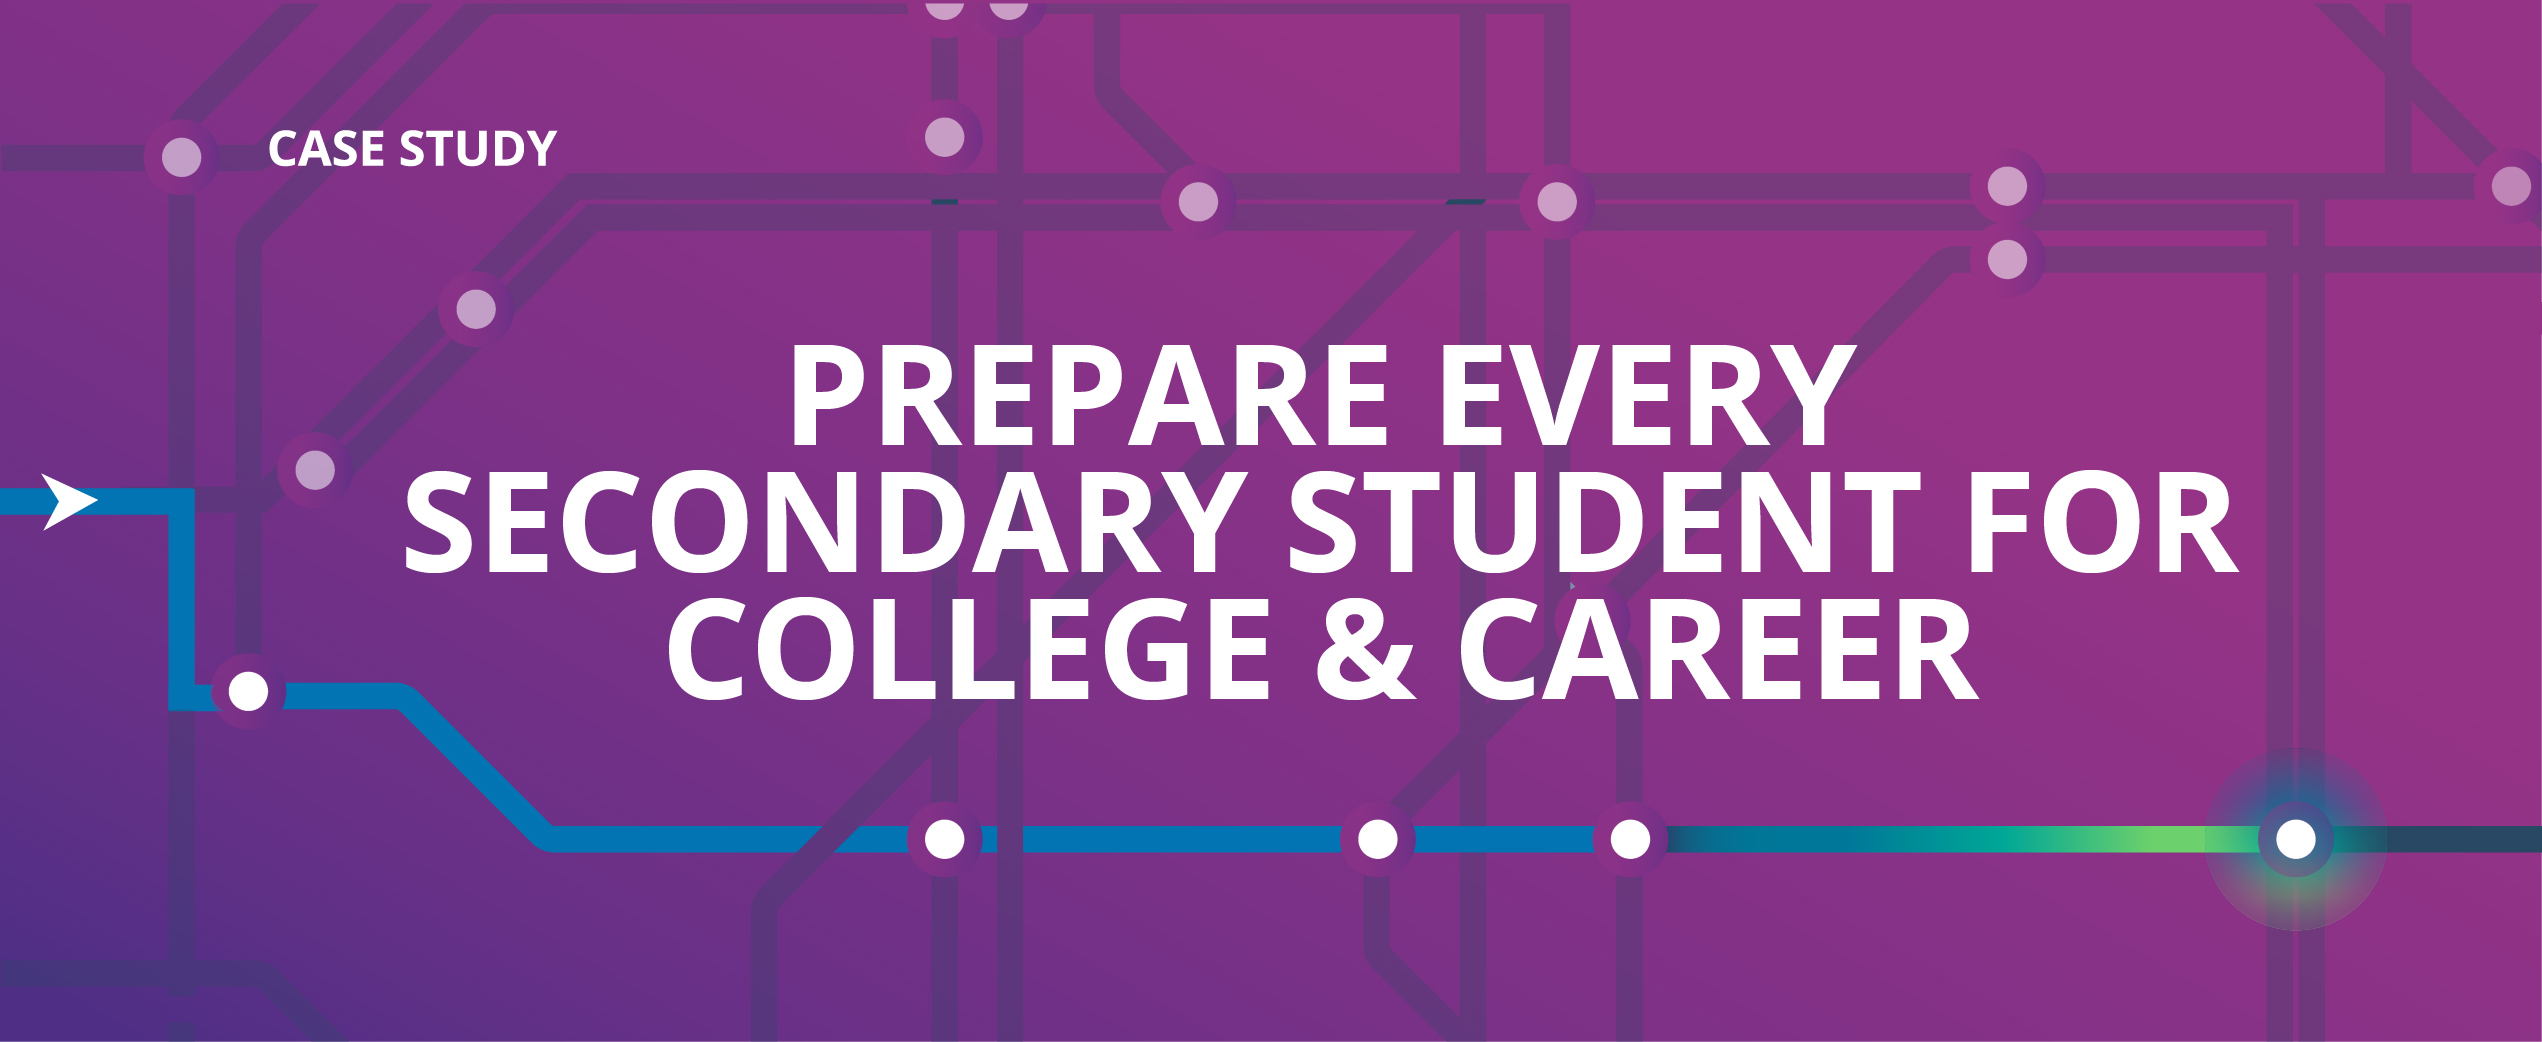 YouScience Aptitude Test Prepares Every Secondary Student for College and Career Readiness